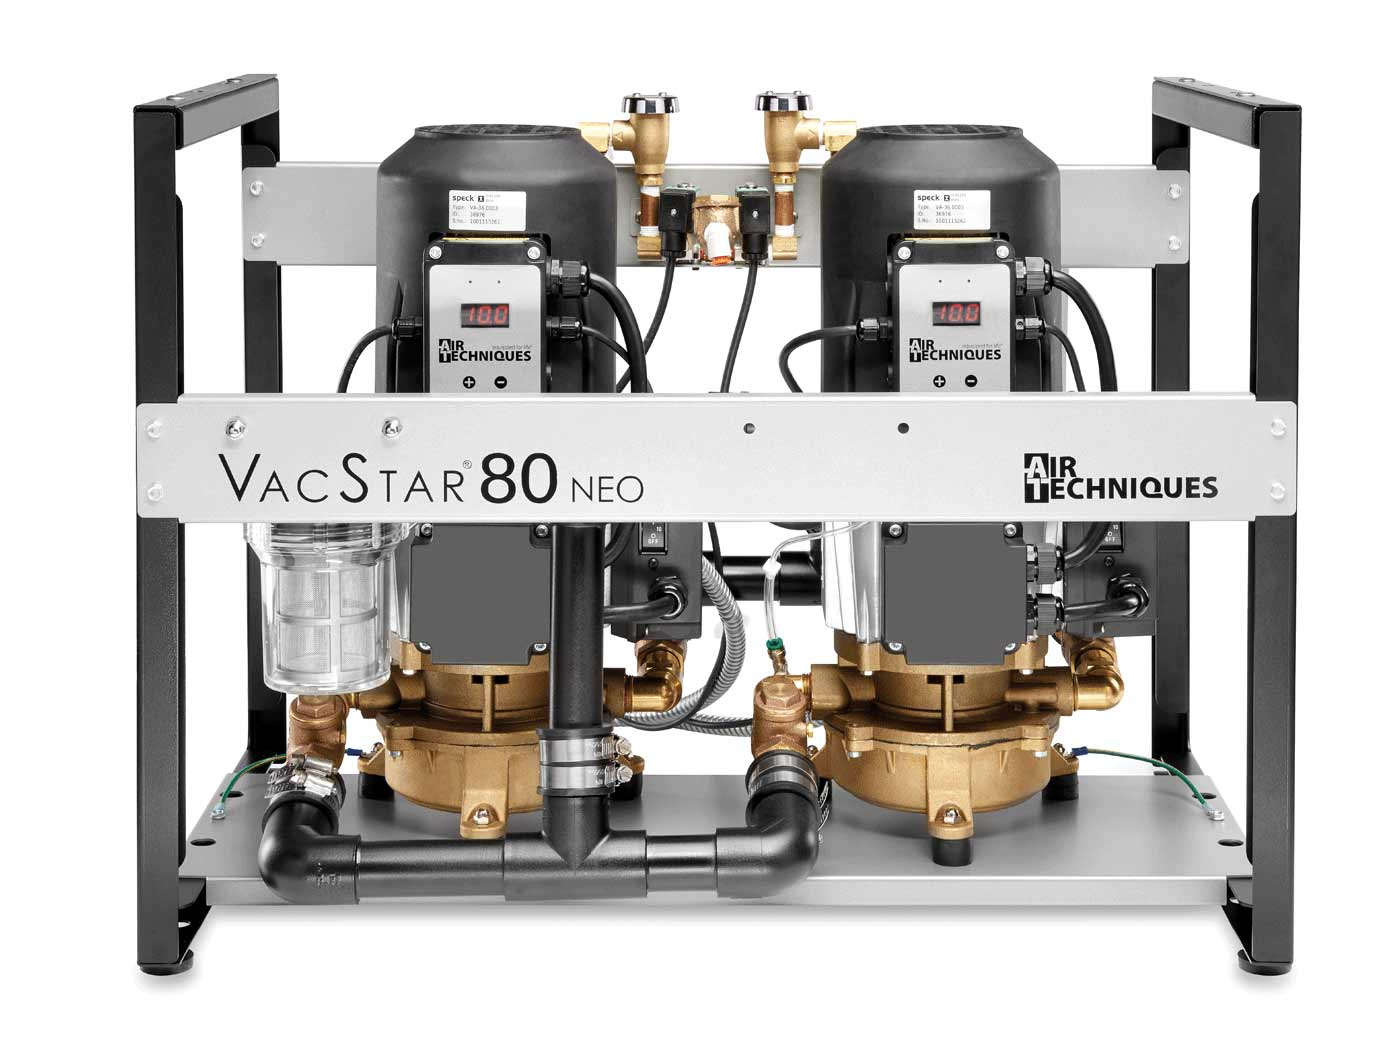 VacStar80NeoStraight vacstar 80 neo air techniques  at bayanpartner.co